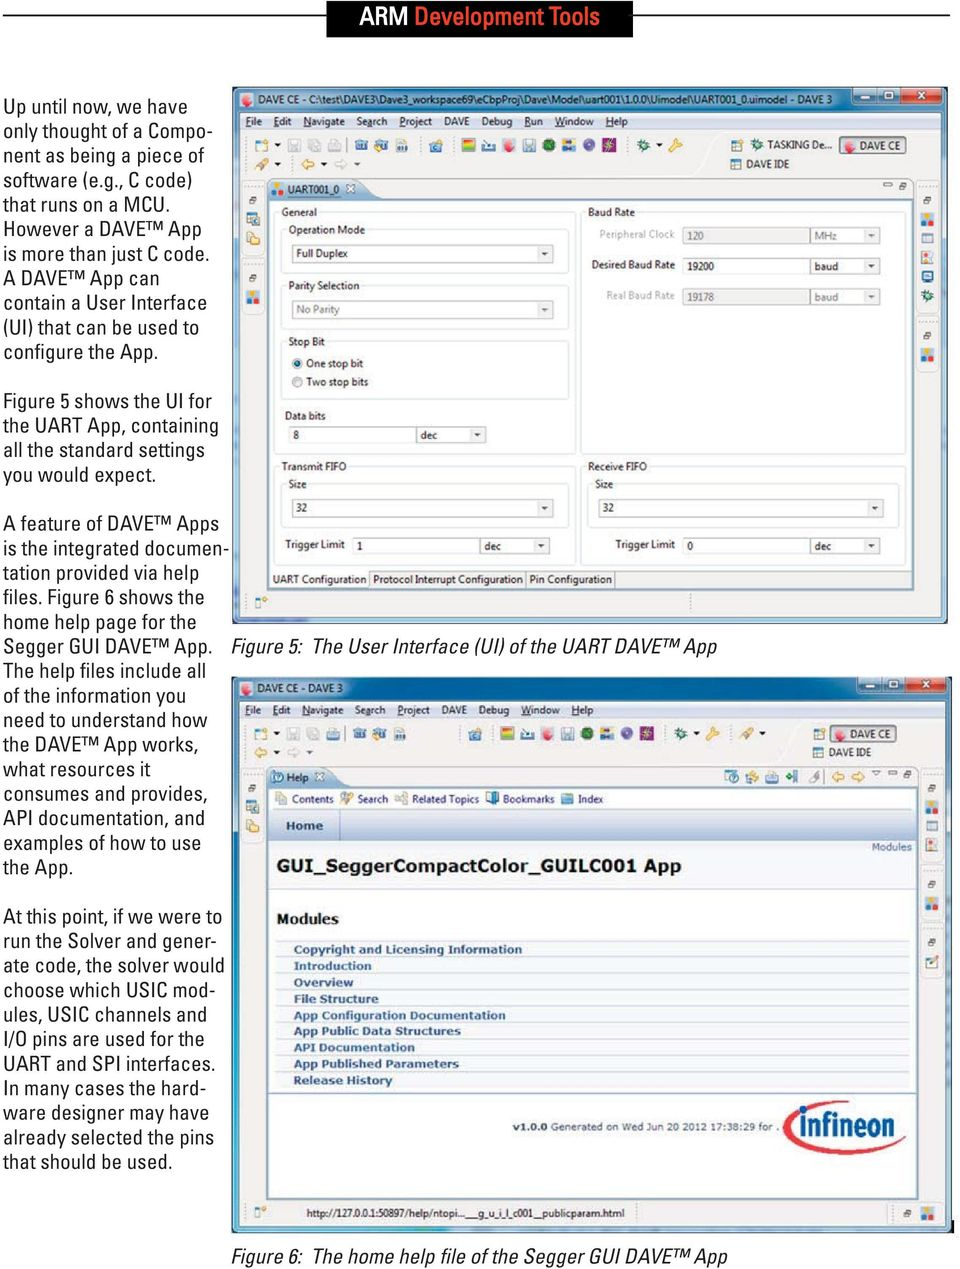 A feature of DAVE Apps is the integrated documentation provided via help files. Figure 6 shows the home help page for the Segger GUI DAVE App.